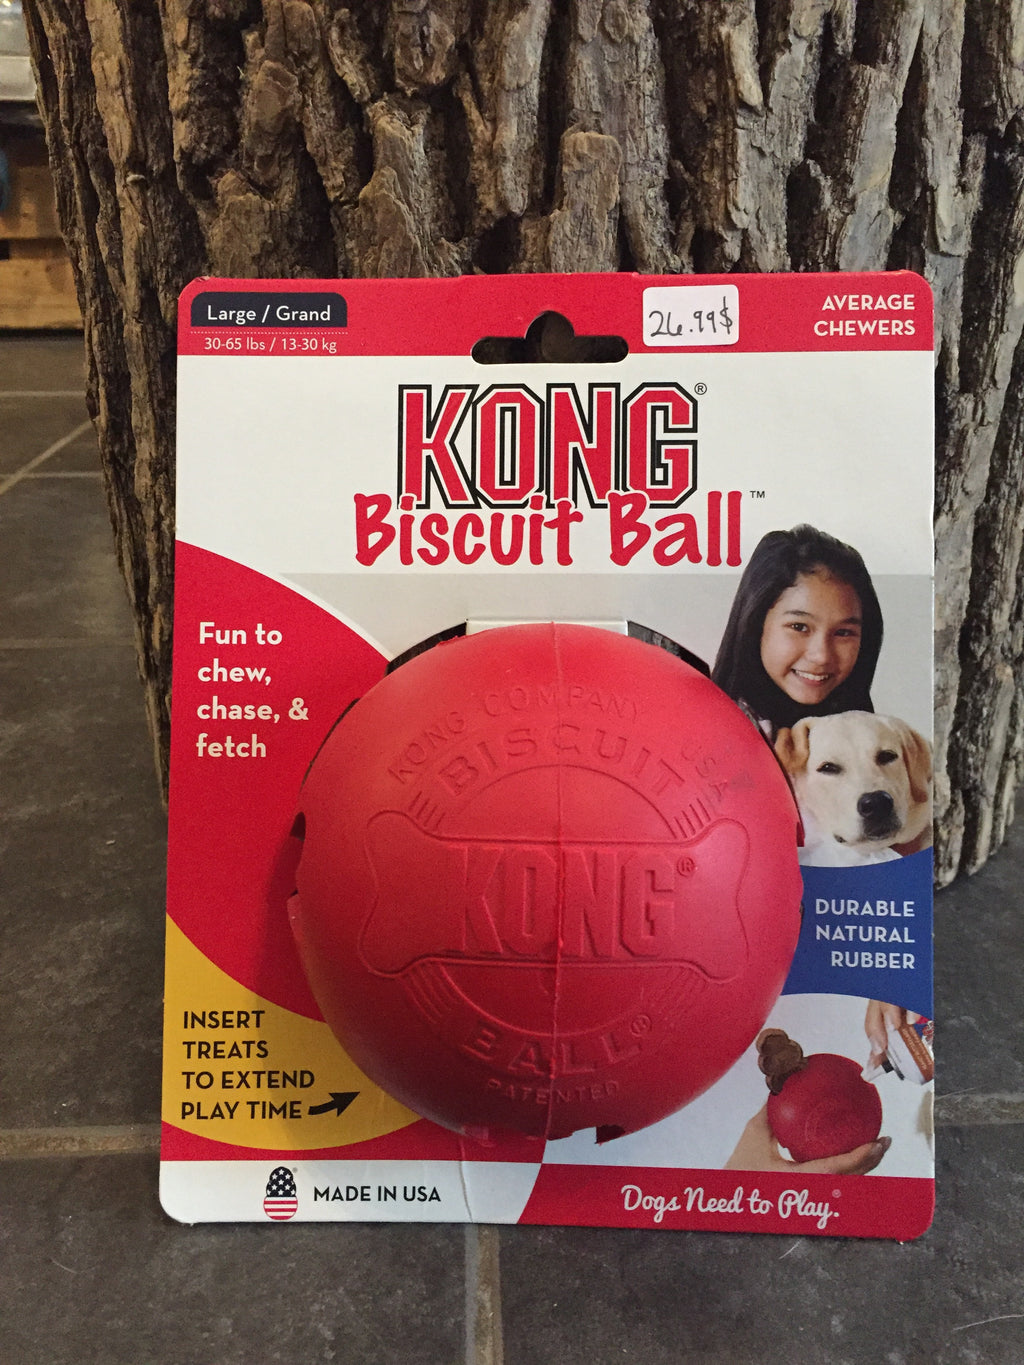 KONG / Biscuit Ball / Large